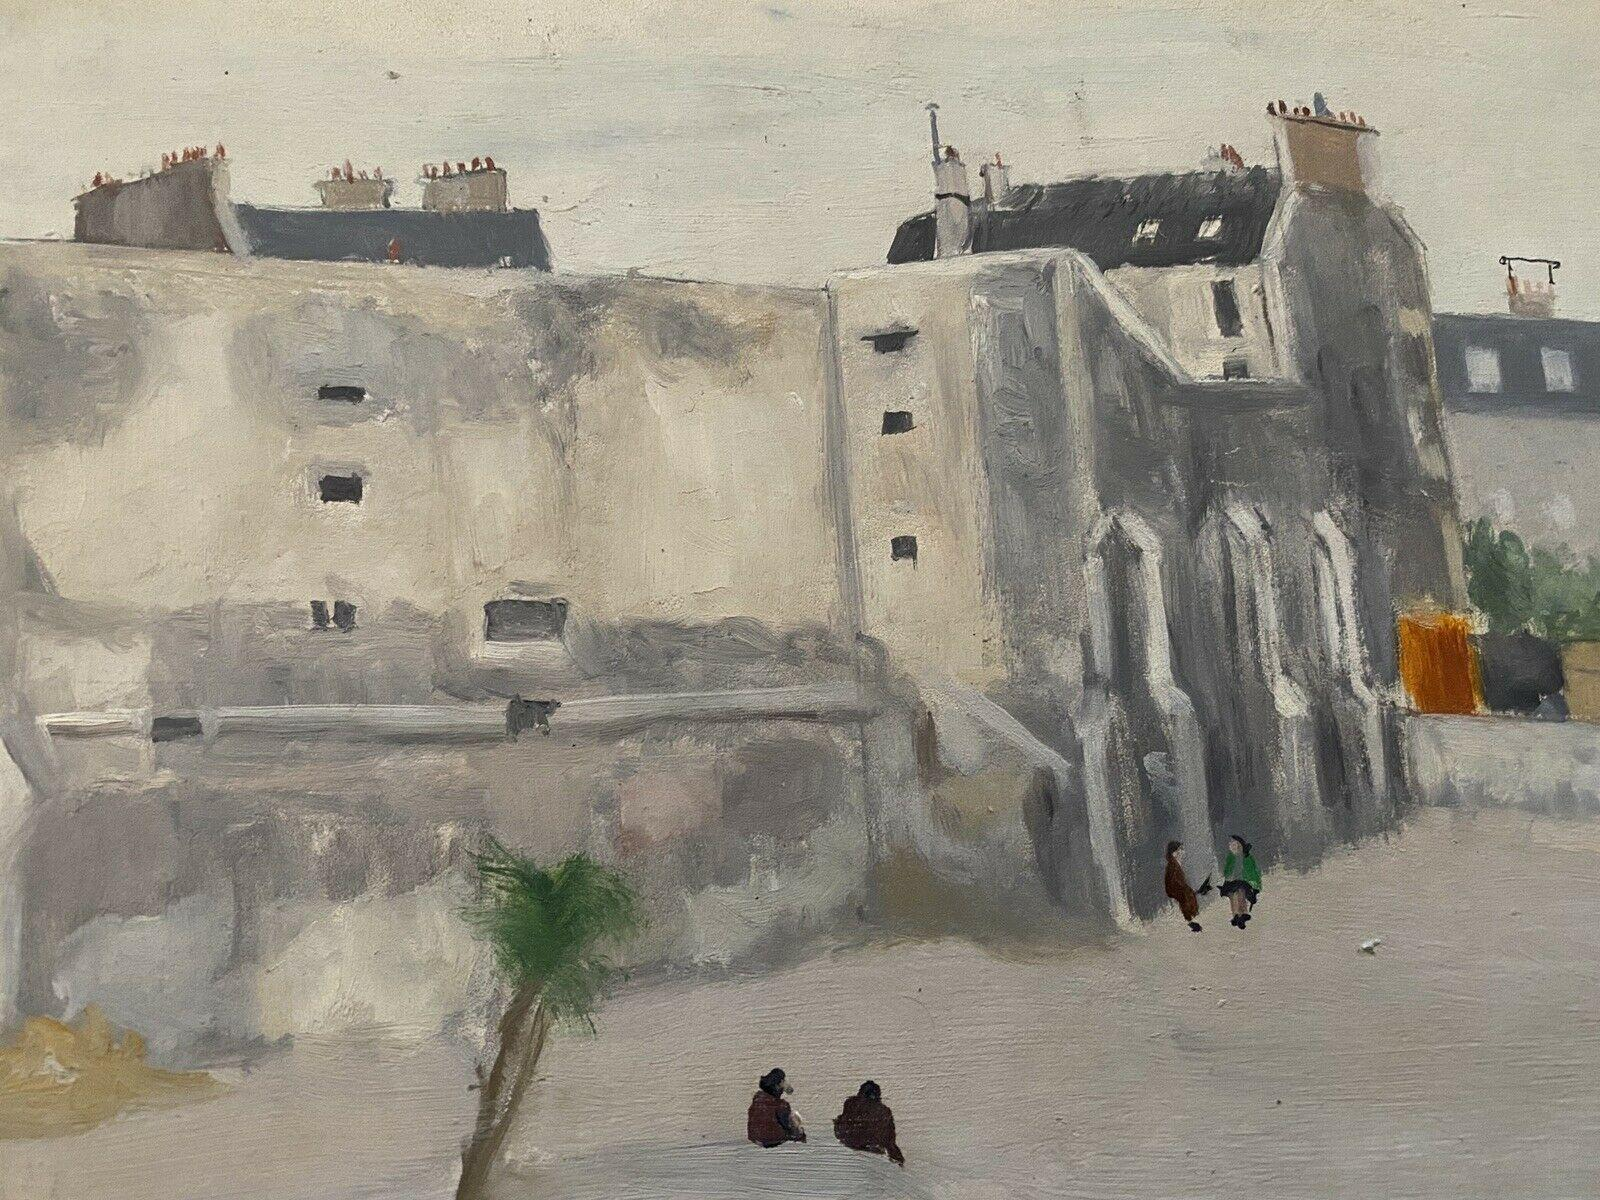 GENEVIEVE ZONDERVAN (1922-2013) FRENCH OIL PAINTING - OLD CITY BUILDINGS & FIGS